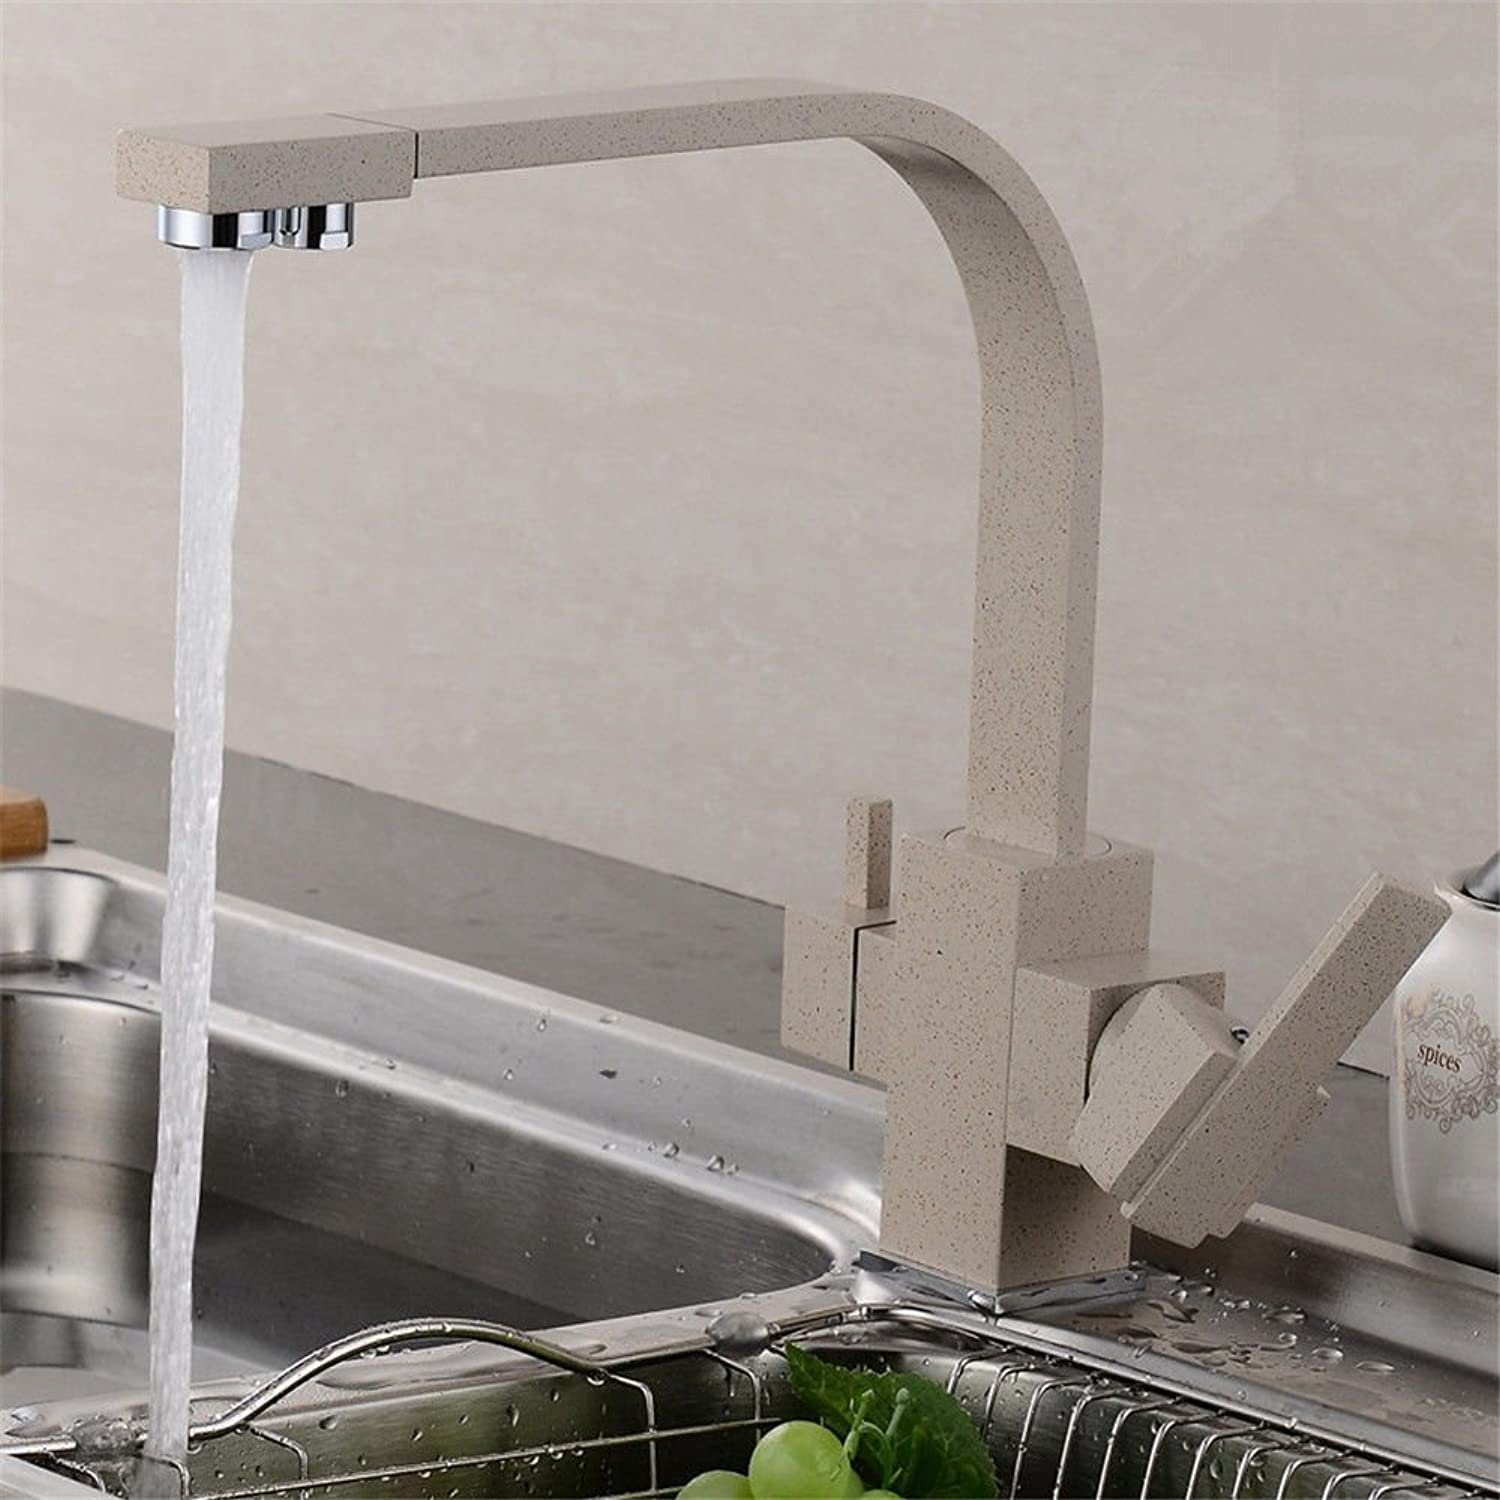 Lpophy Bathroom Sink Mixer Taps Faucet Bath Waterfall Cold and Hot Water Tap for Washroom Bathroom and Kitchen Copper Hot and Cold redatable Oatmeal D